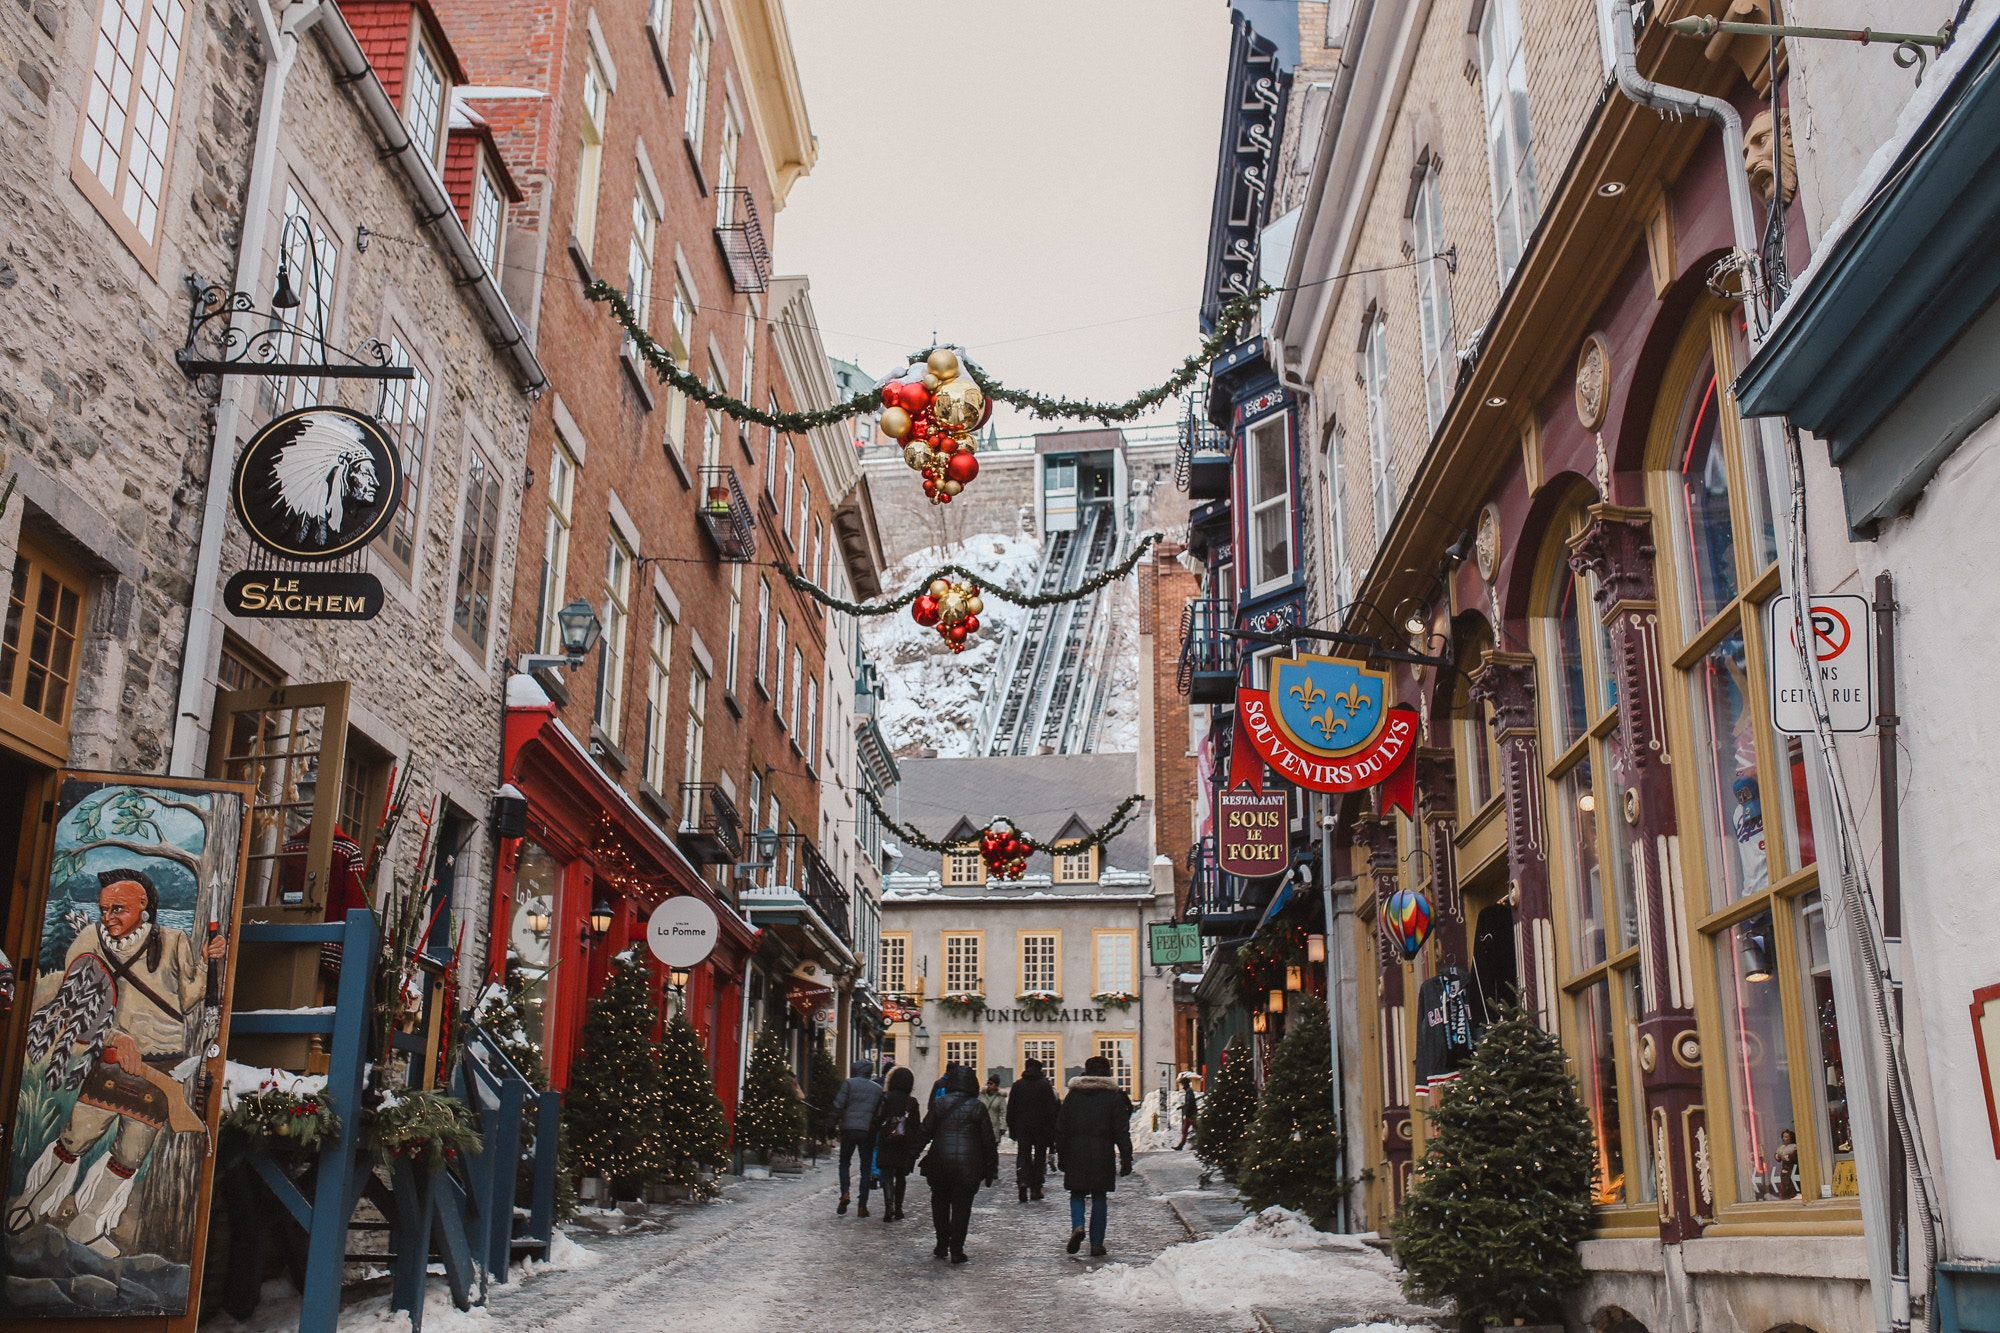 Charming Petit Champlain funicular in Old Quebec City